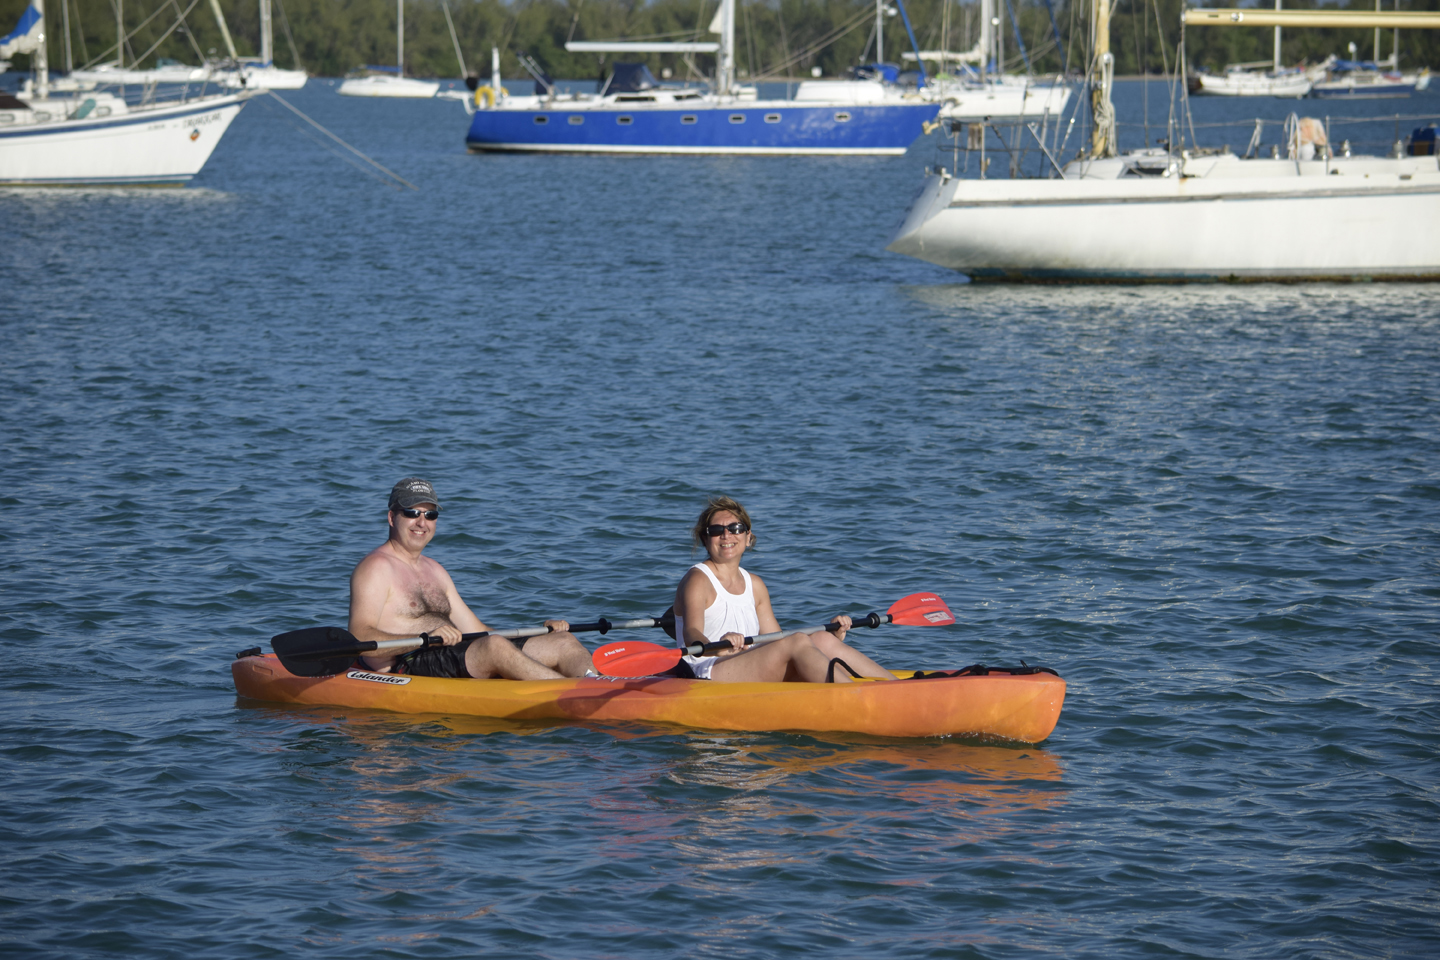 IN THE SIX HOUR TRIP A TANDEM KAYAK AND SUP ARE COMPLIMENTARY